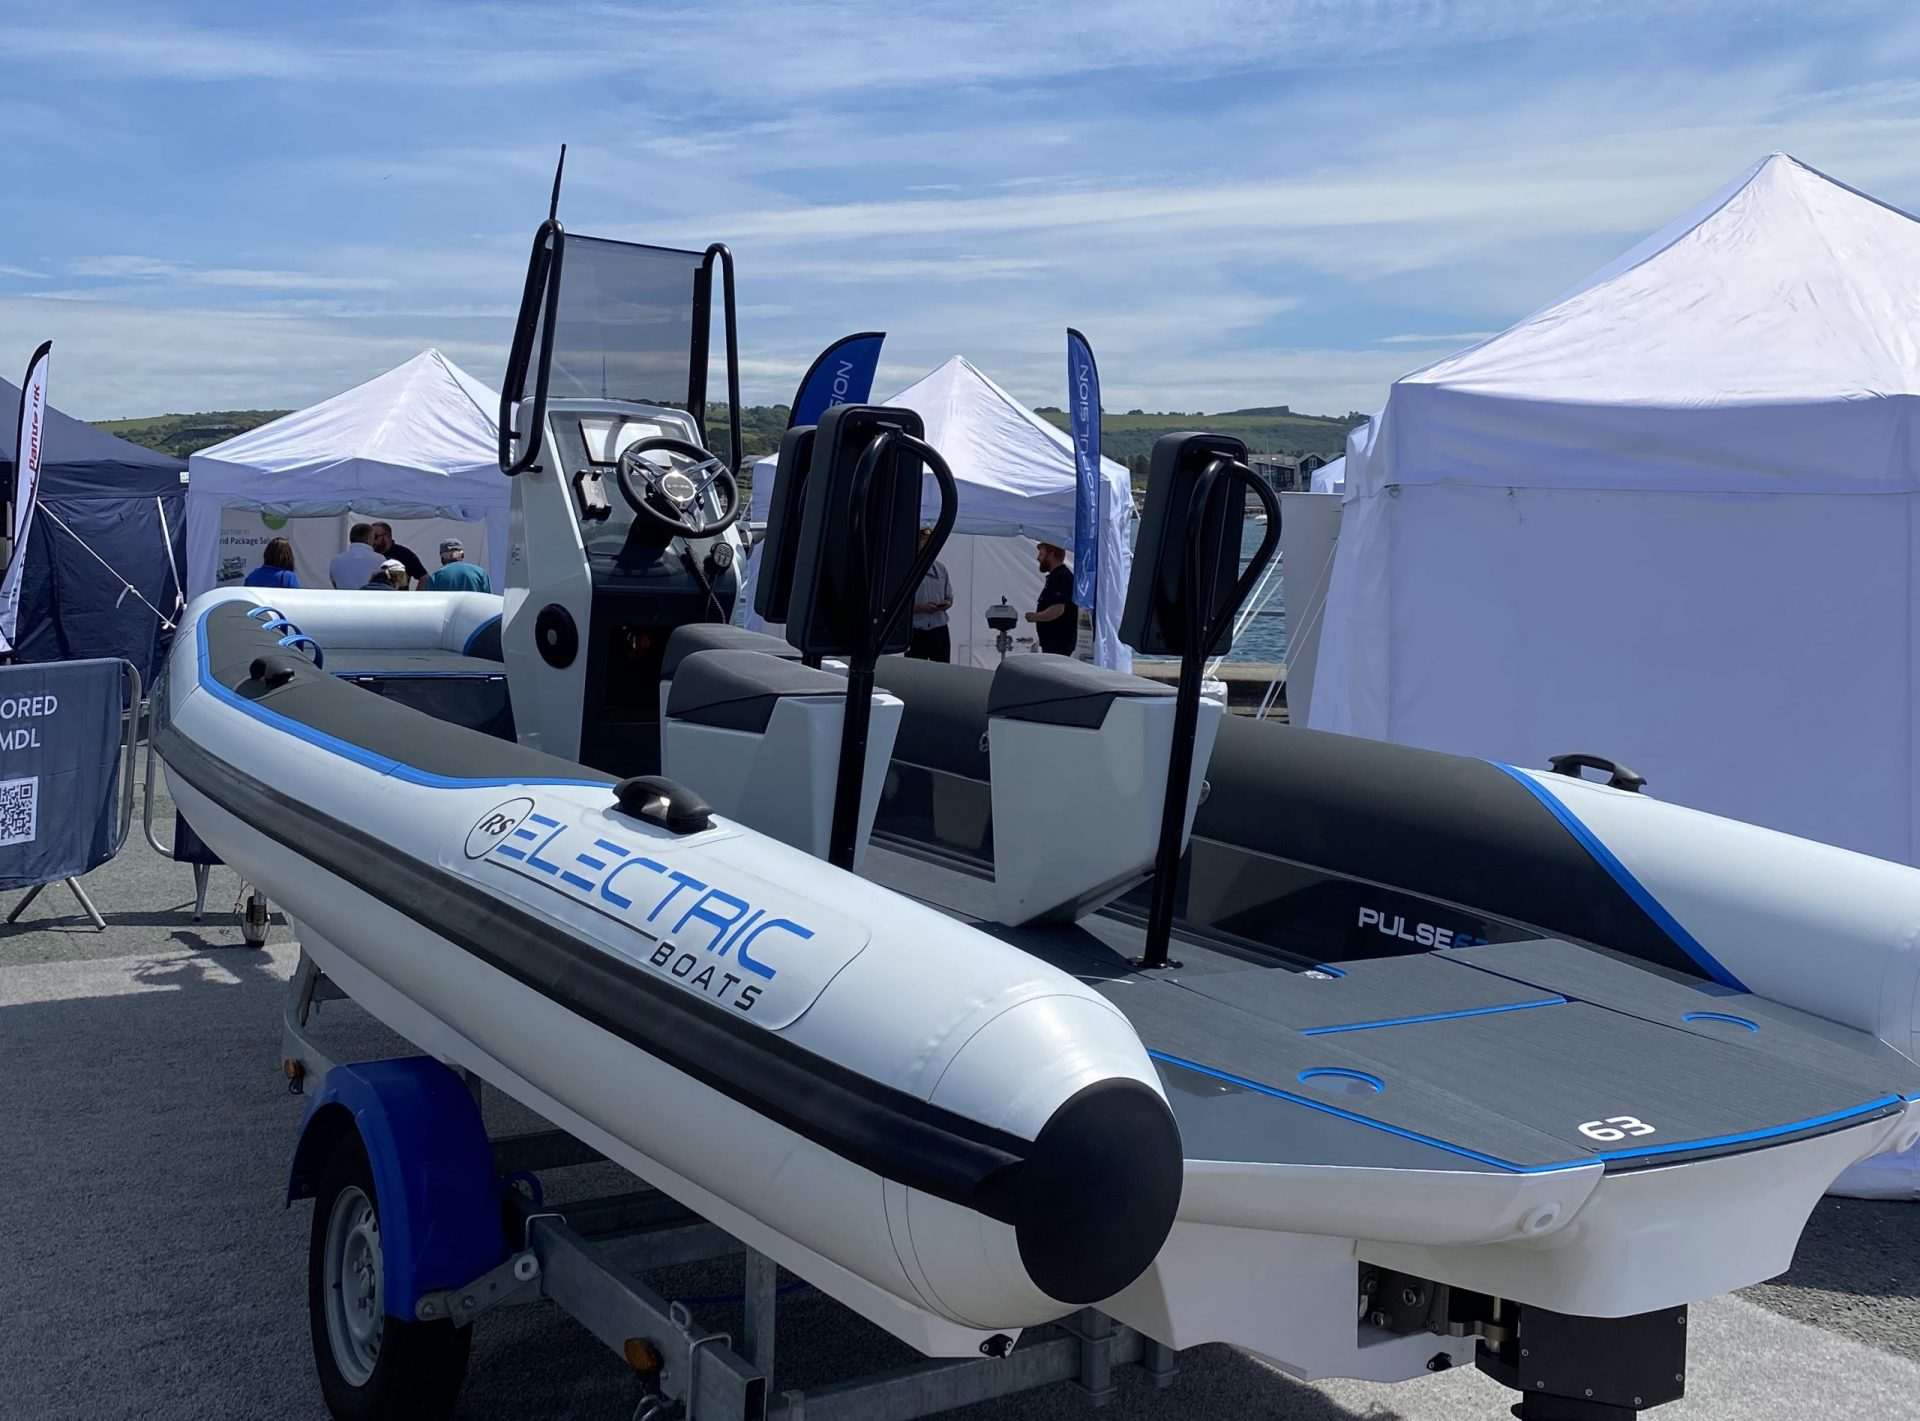 Pulse 63 at the Green Tech Show 2021